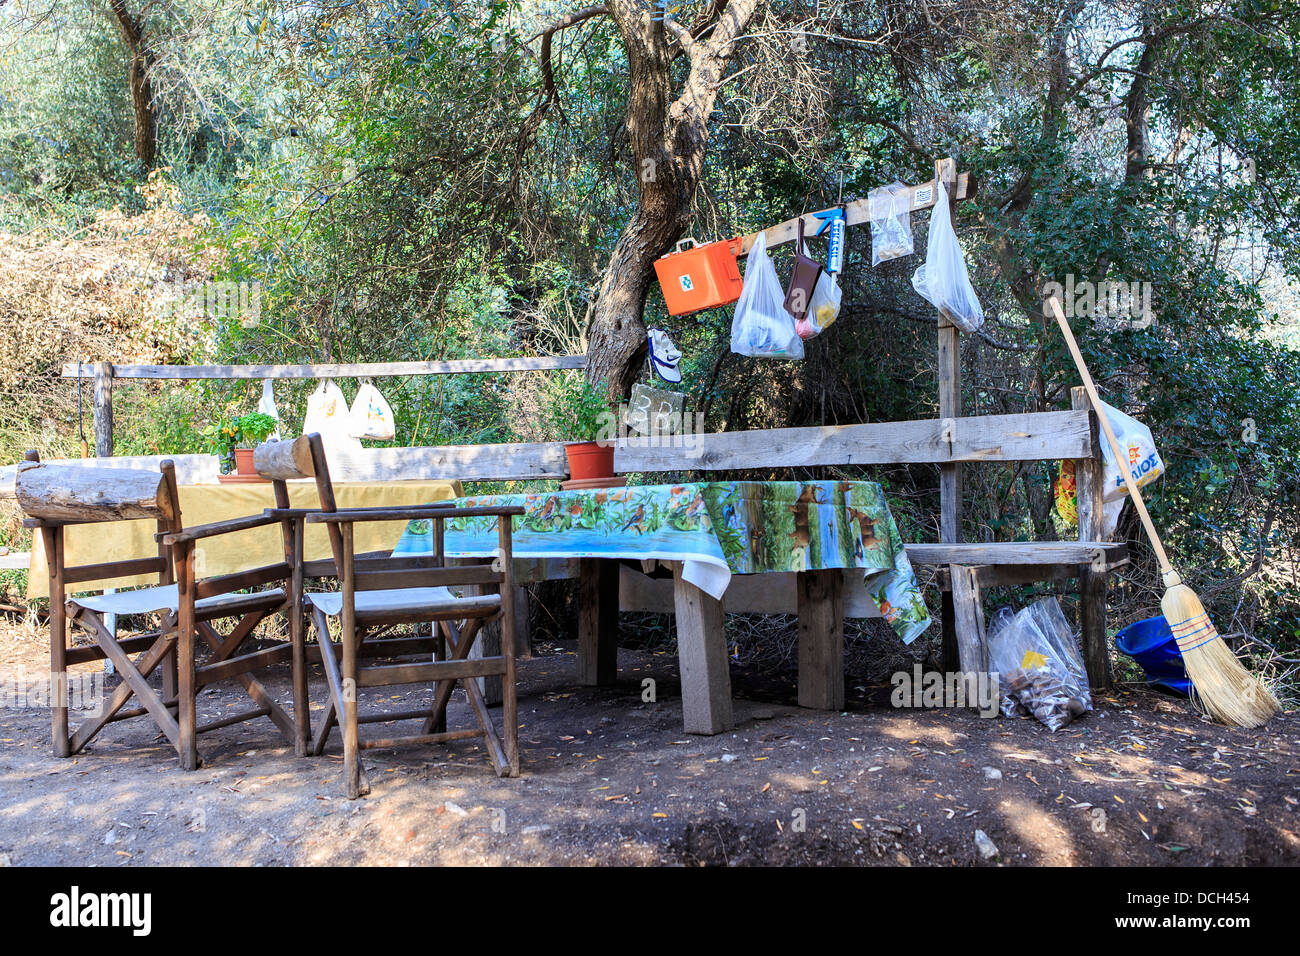 Wooden chairs, desk, broom, olive tree in the background and a first aid kit. - Stock Image